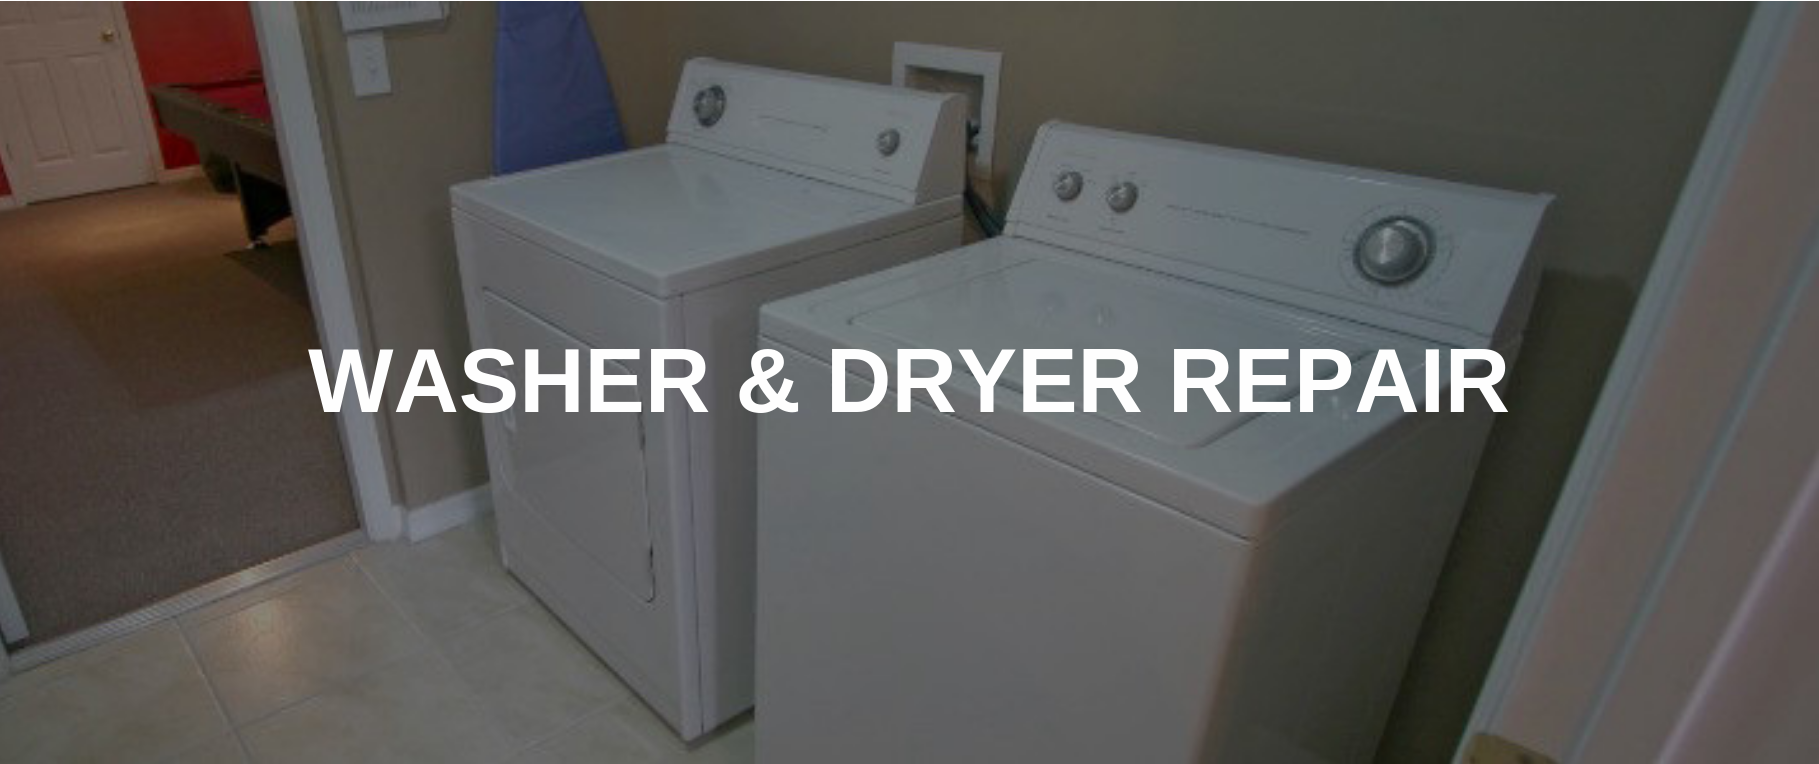 washing machine repair naugatuck